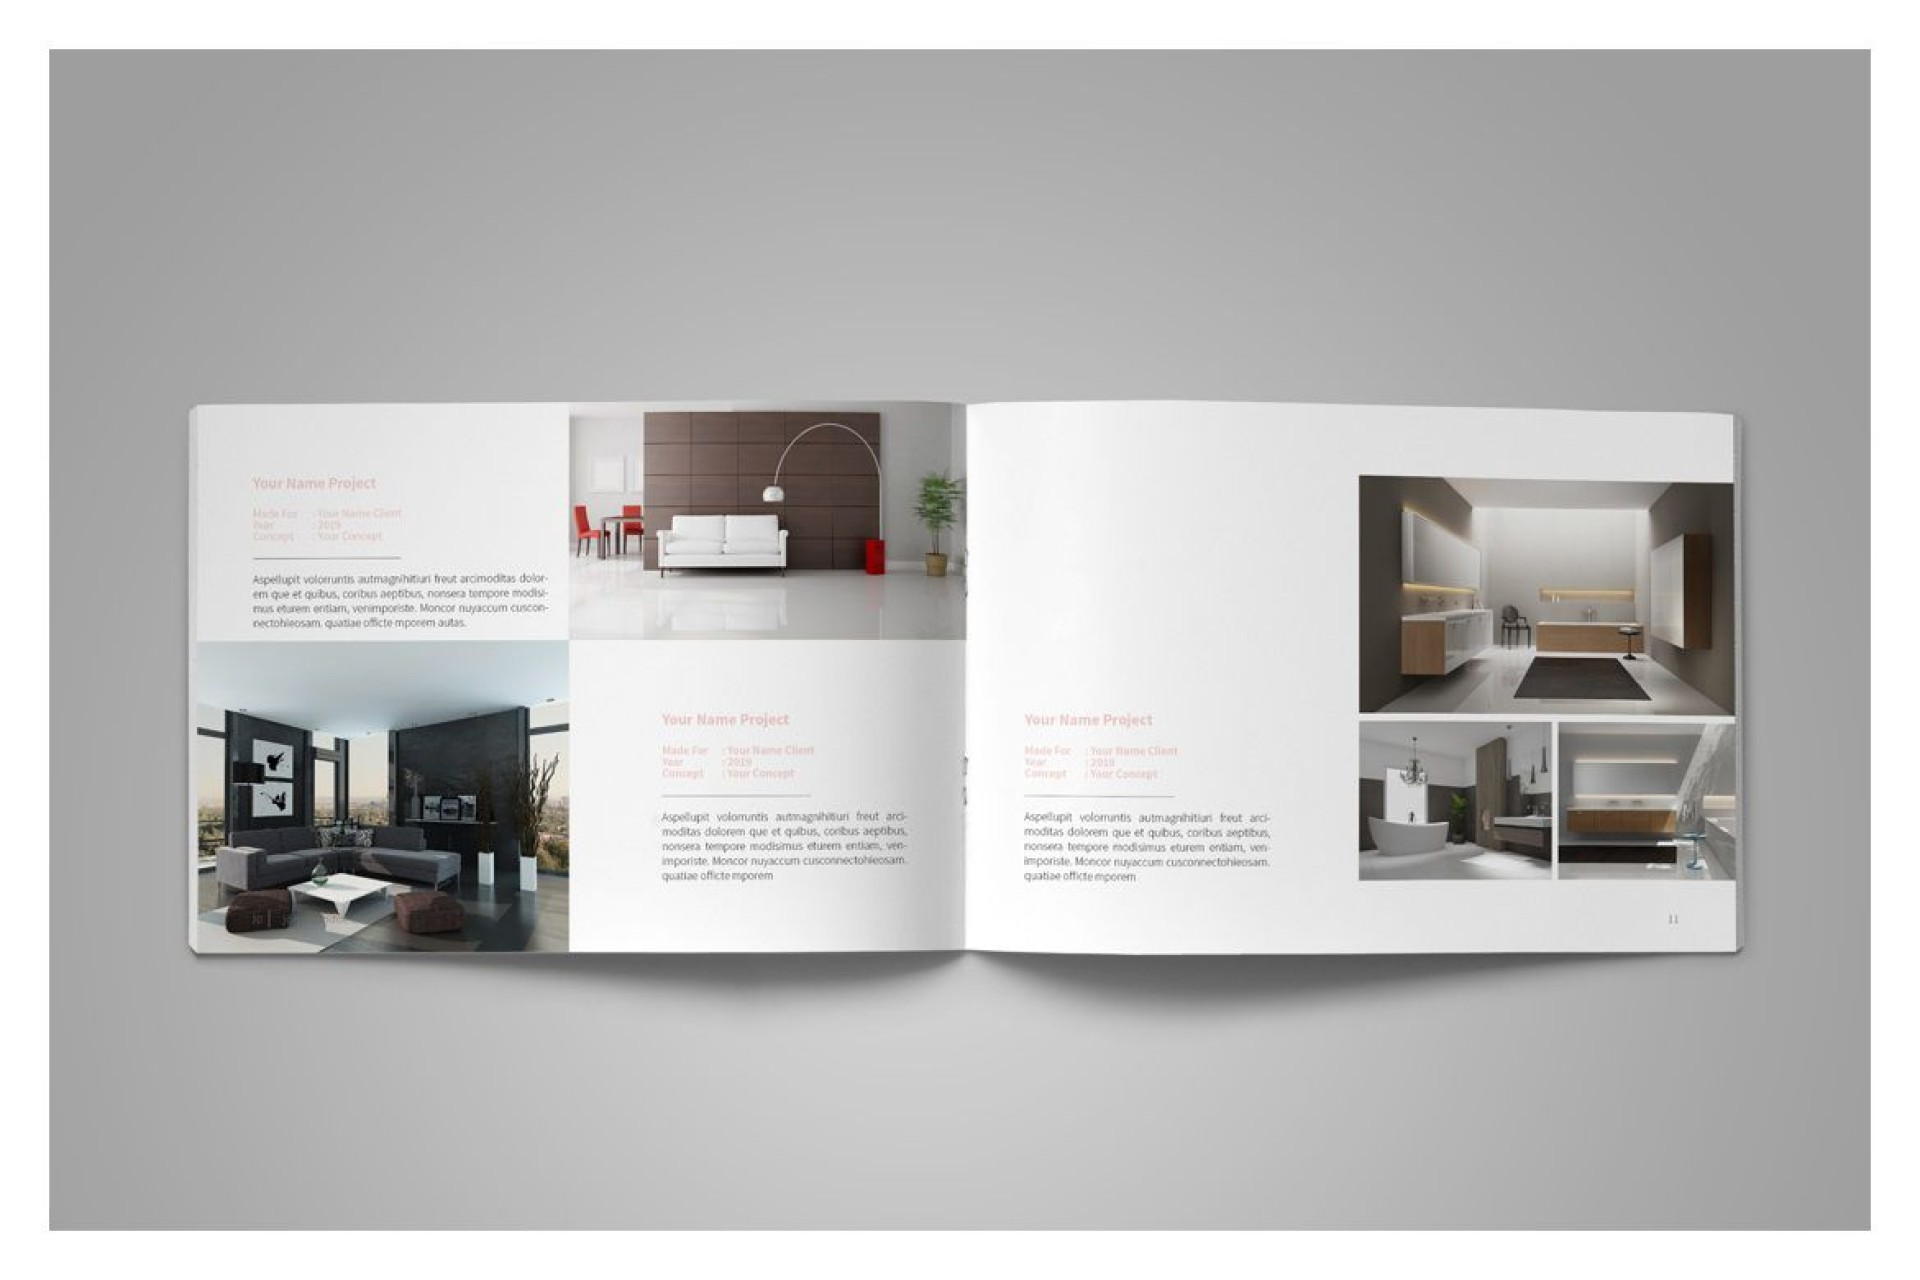 006 Wonderful Interior Design Portfolio Template Inspiration  Ppt Free Download Layout1920